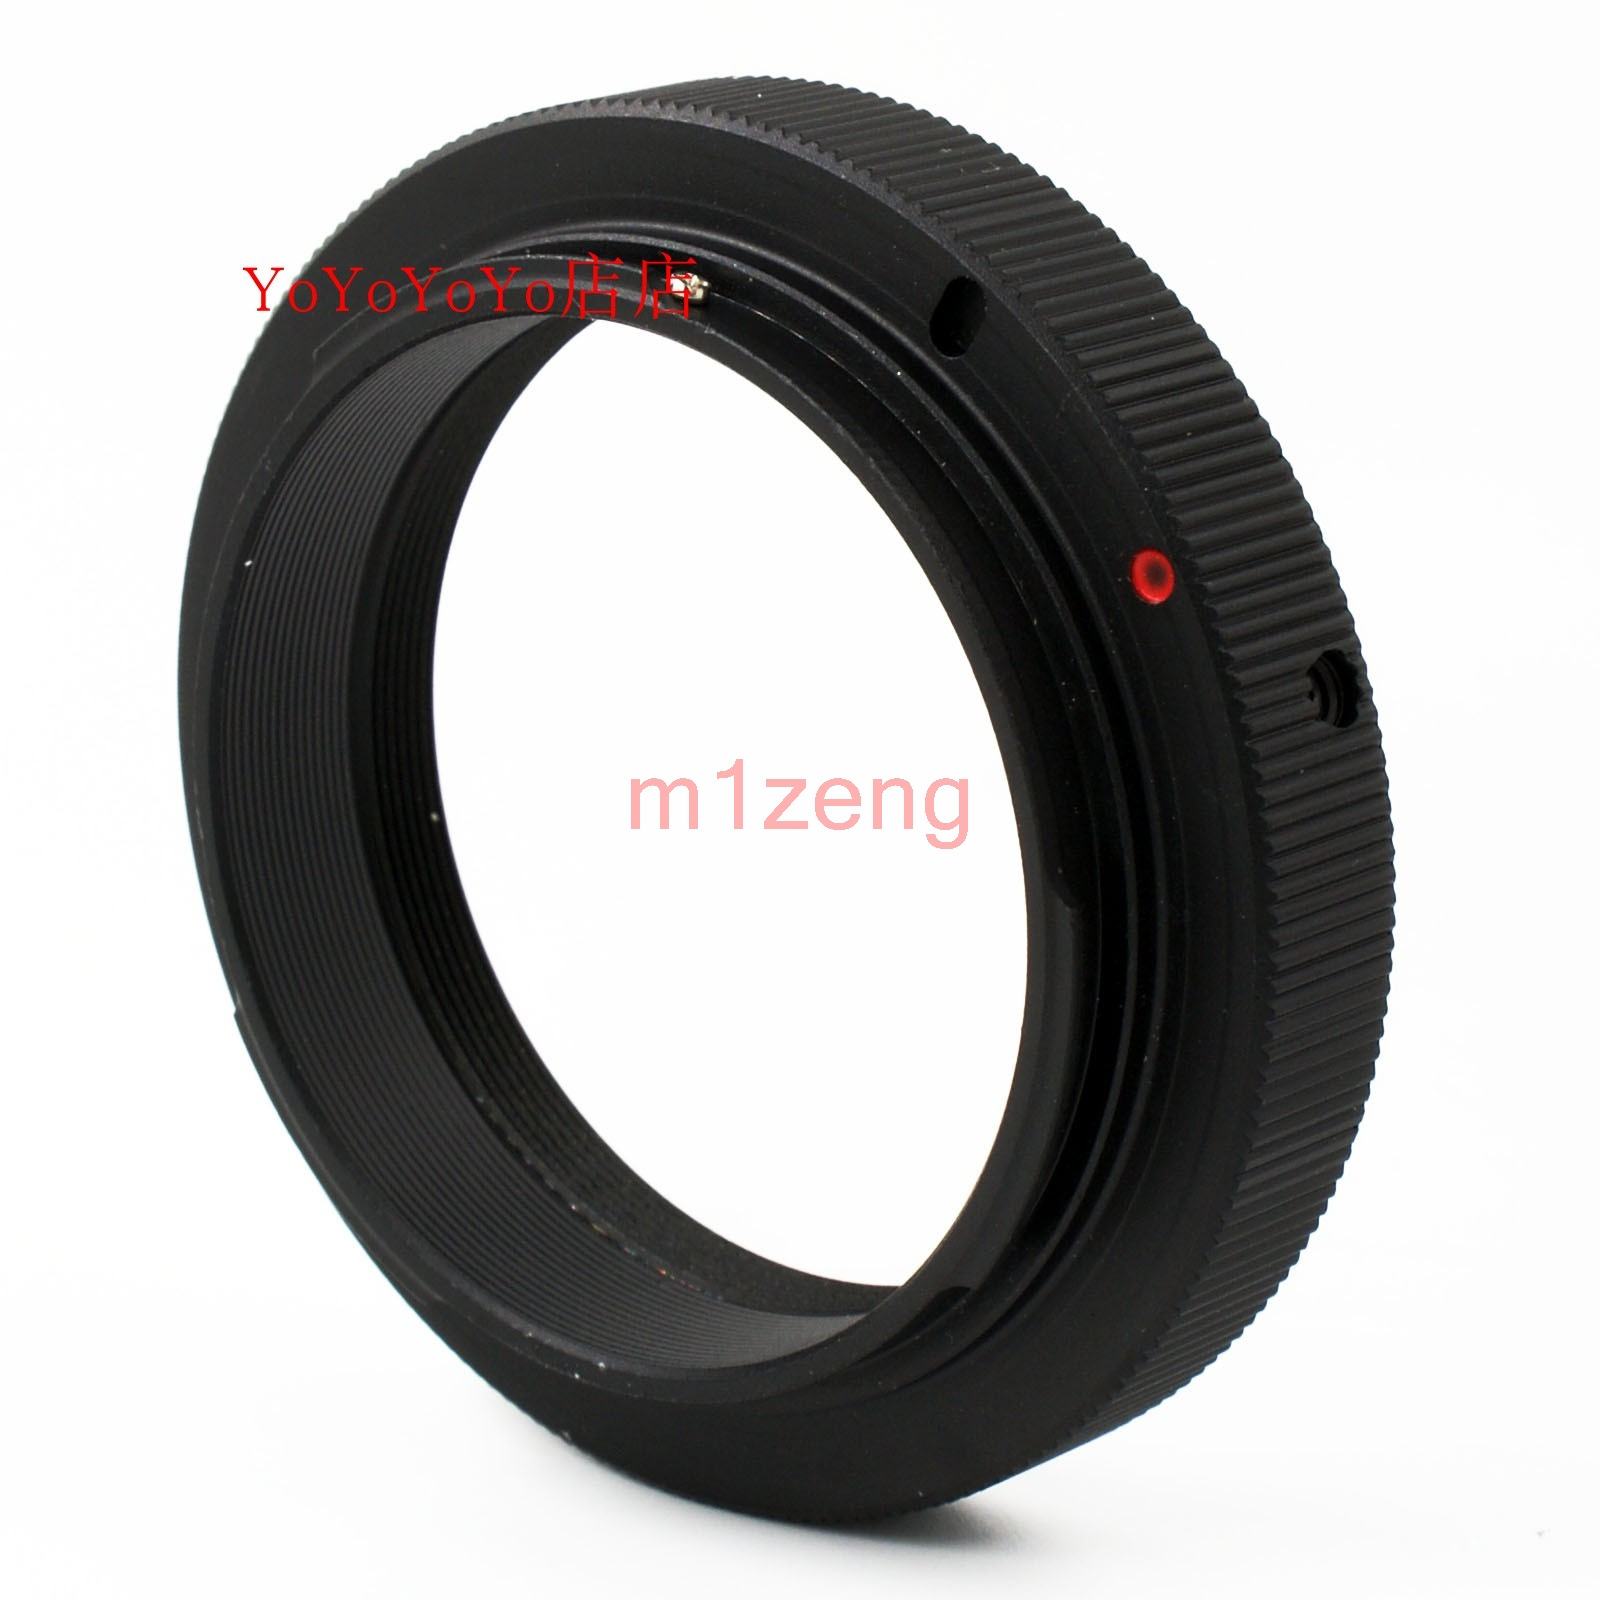 <font><b>adapter</b></font> ring for <font><b>M48</b></font>*0.75 Telescope Eyepiece Lens to canon 5d3 5d4 6d 7d 90d 650D 750d 760d nikon d5 d90 d500 d750 d800 camera image